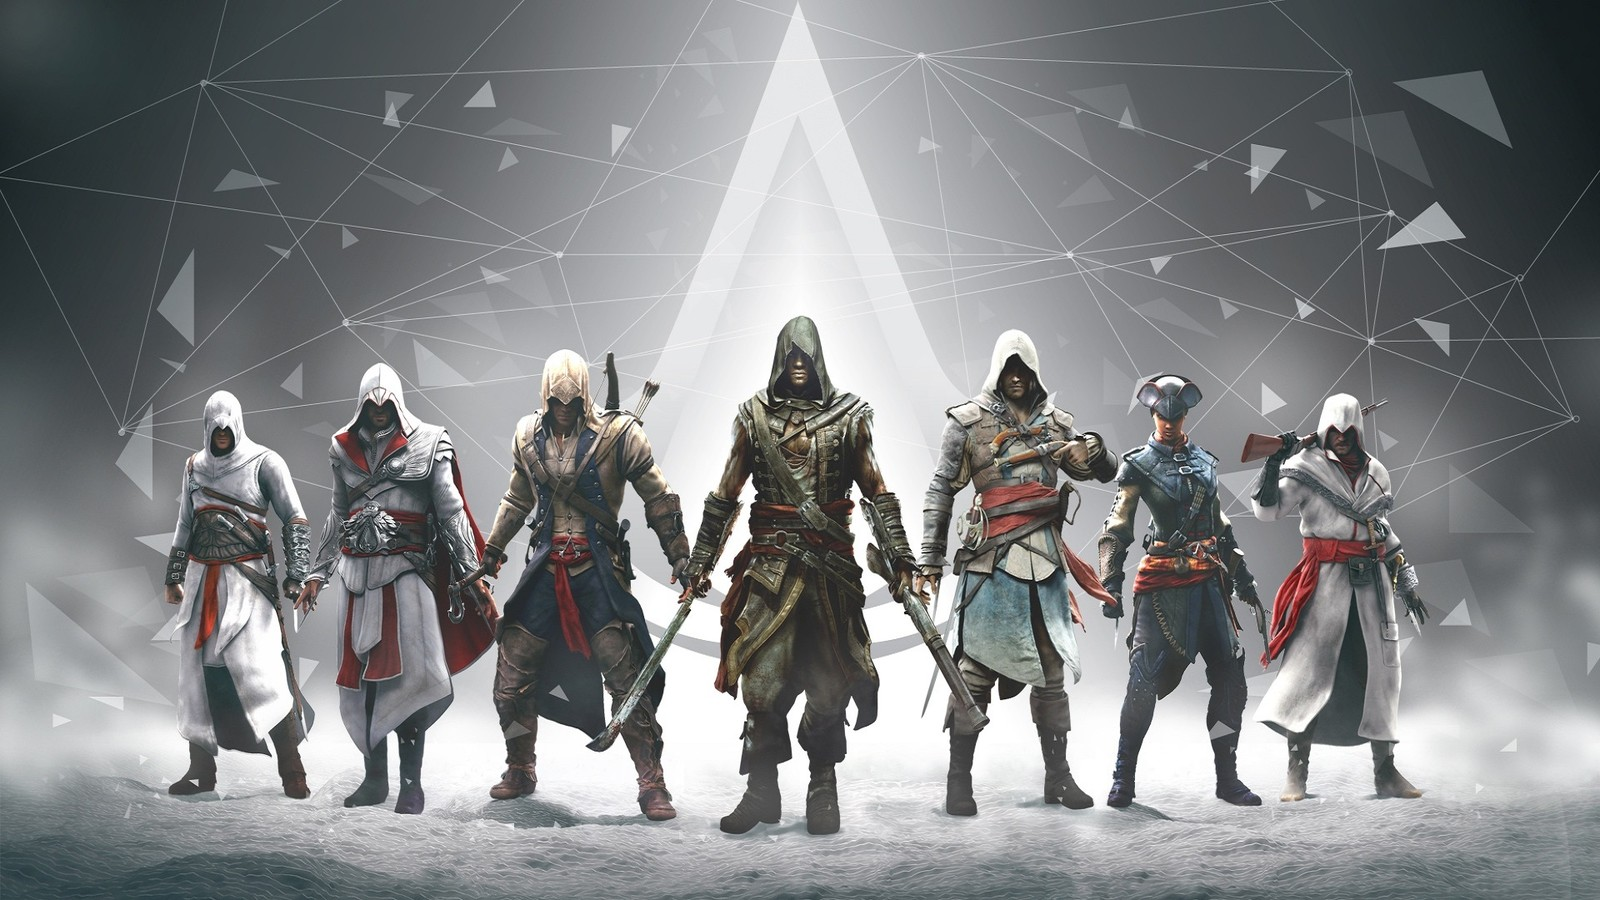 High Resolution Wallpaper | Assassin's Creed 1600x900 px